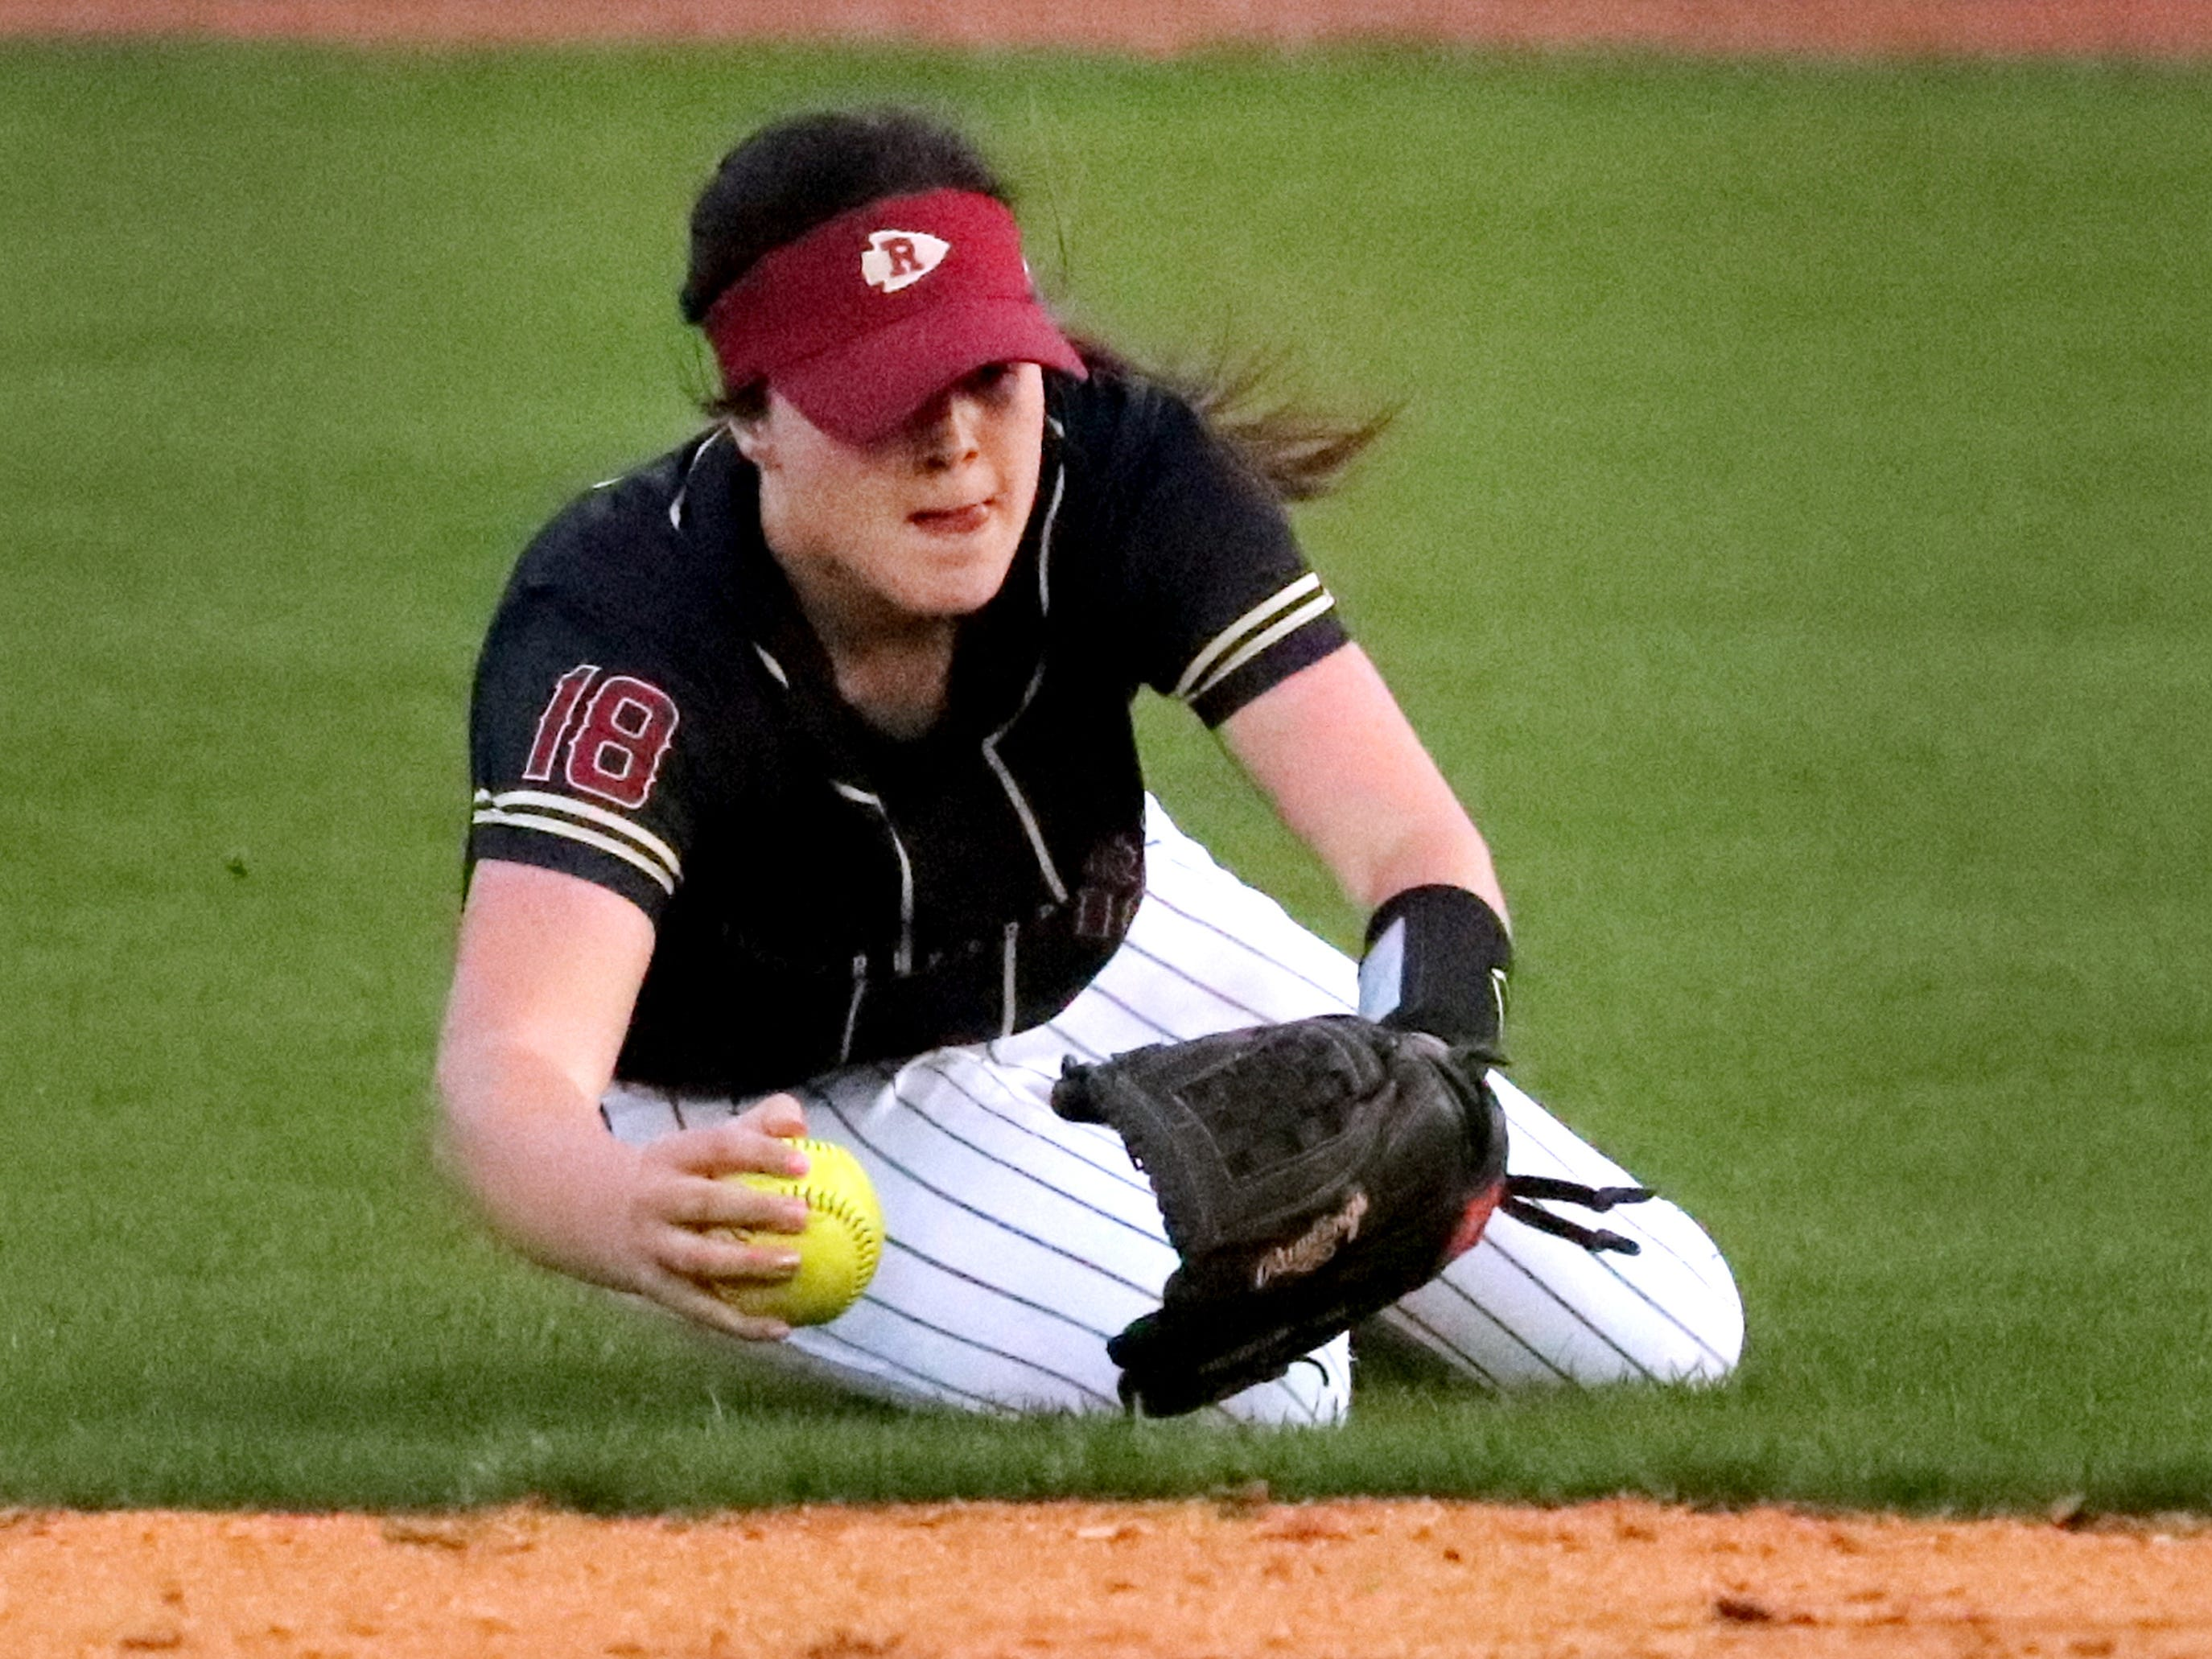 Riverdale's Sydney Williams (18) makes a catch and holds onto it as she falls to the ground in the outfield during the game against Siegel on Thursday April 11, 2019, at Riverdale.